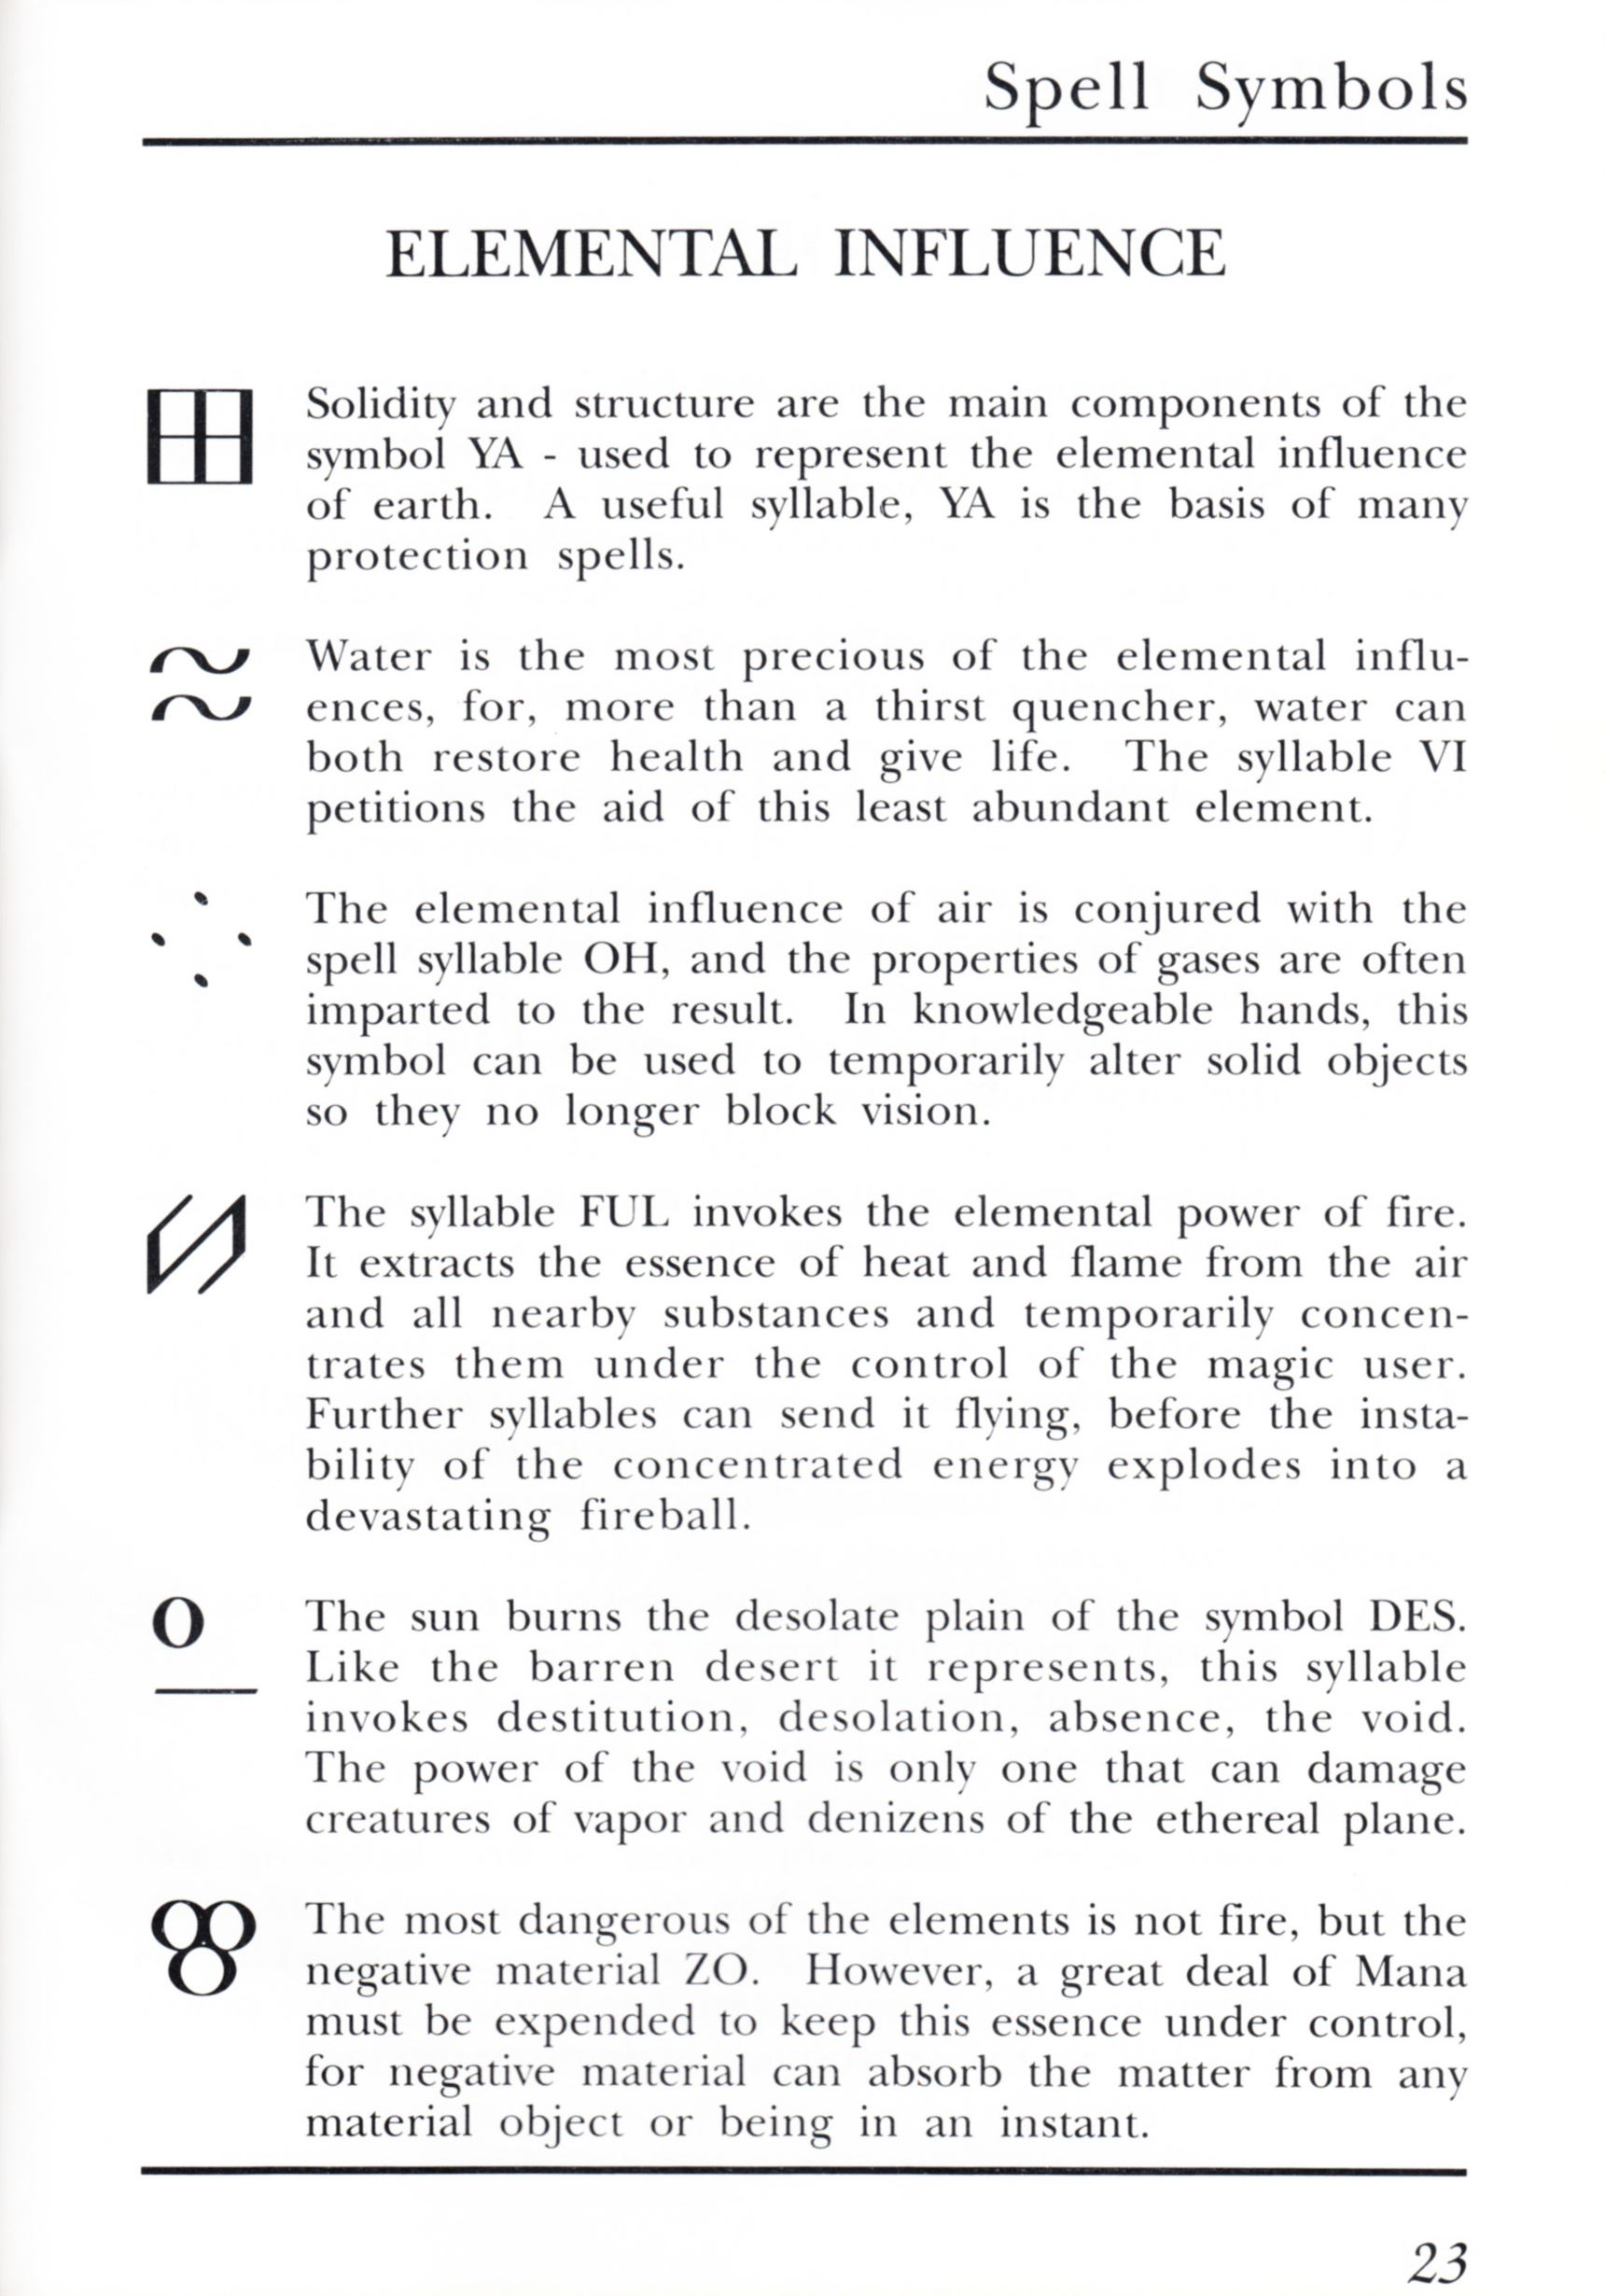 Game - Dungeon Master - UK - PC - Psygnosis - Manual - Page 043 - Scan